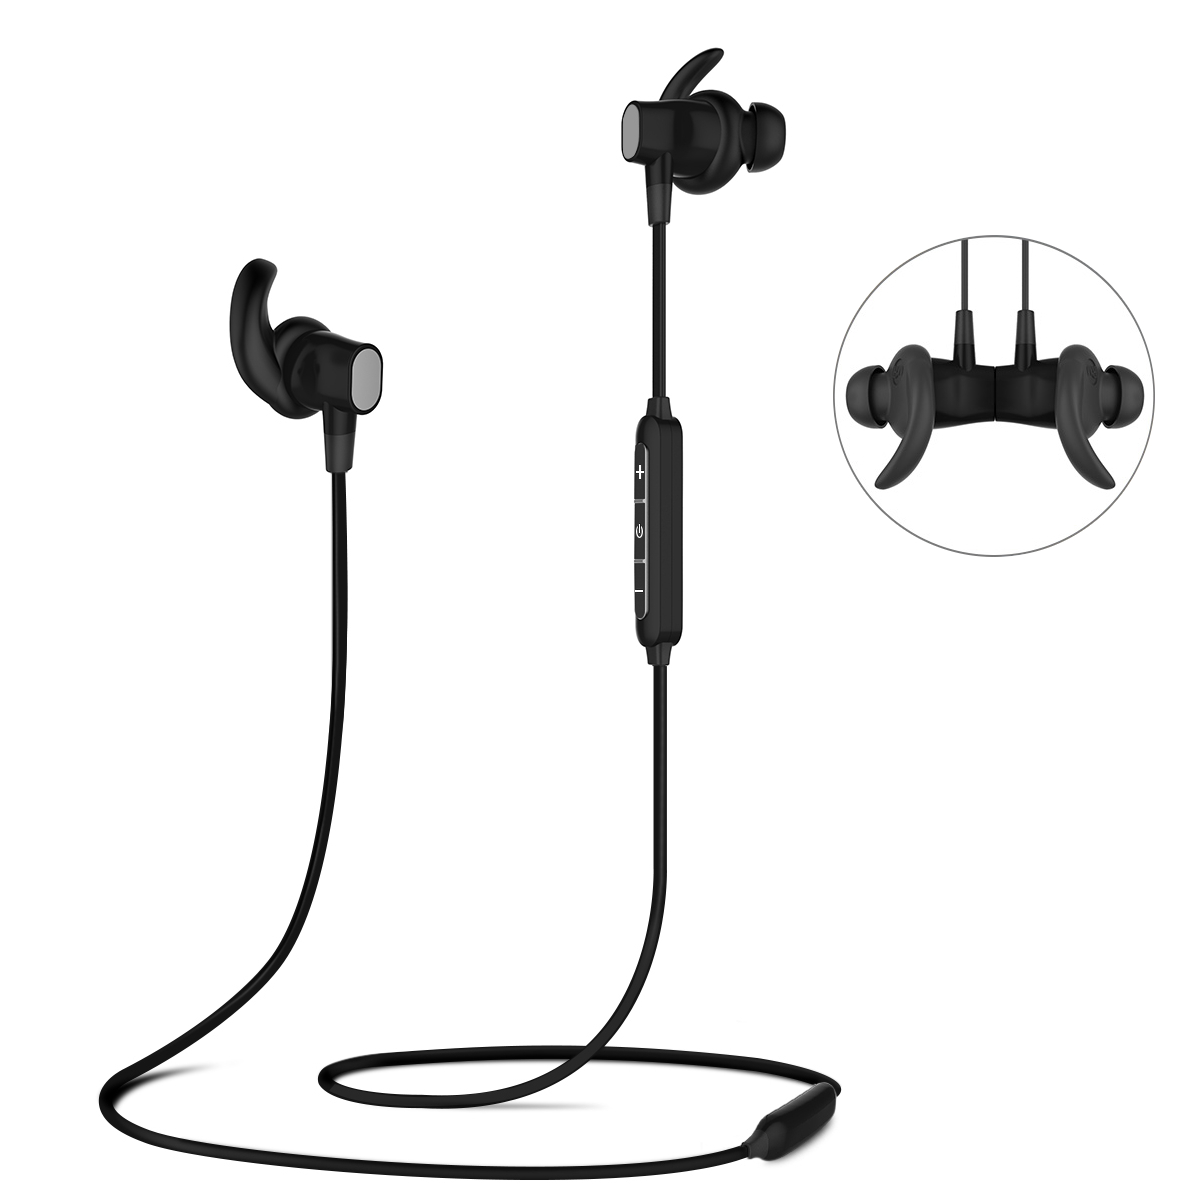 Earbuds, ELEGIANT Wireless Headphones For Sports Gym Running ,IPX6 Waterproof and Sweatproof Magnetic Secure-Fit Headset Noise Cancelling Earphones with Mic